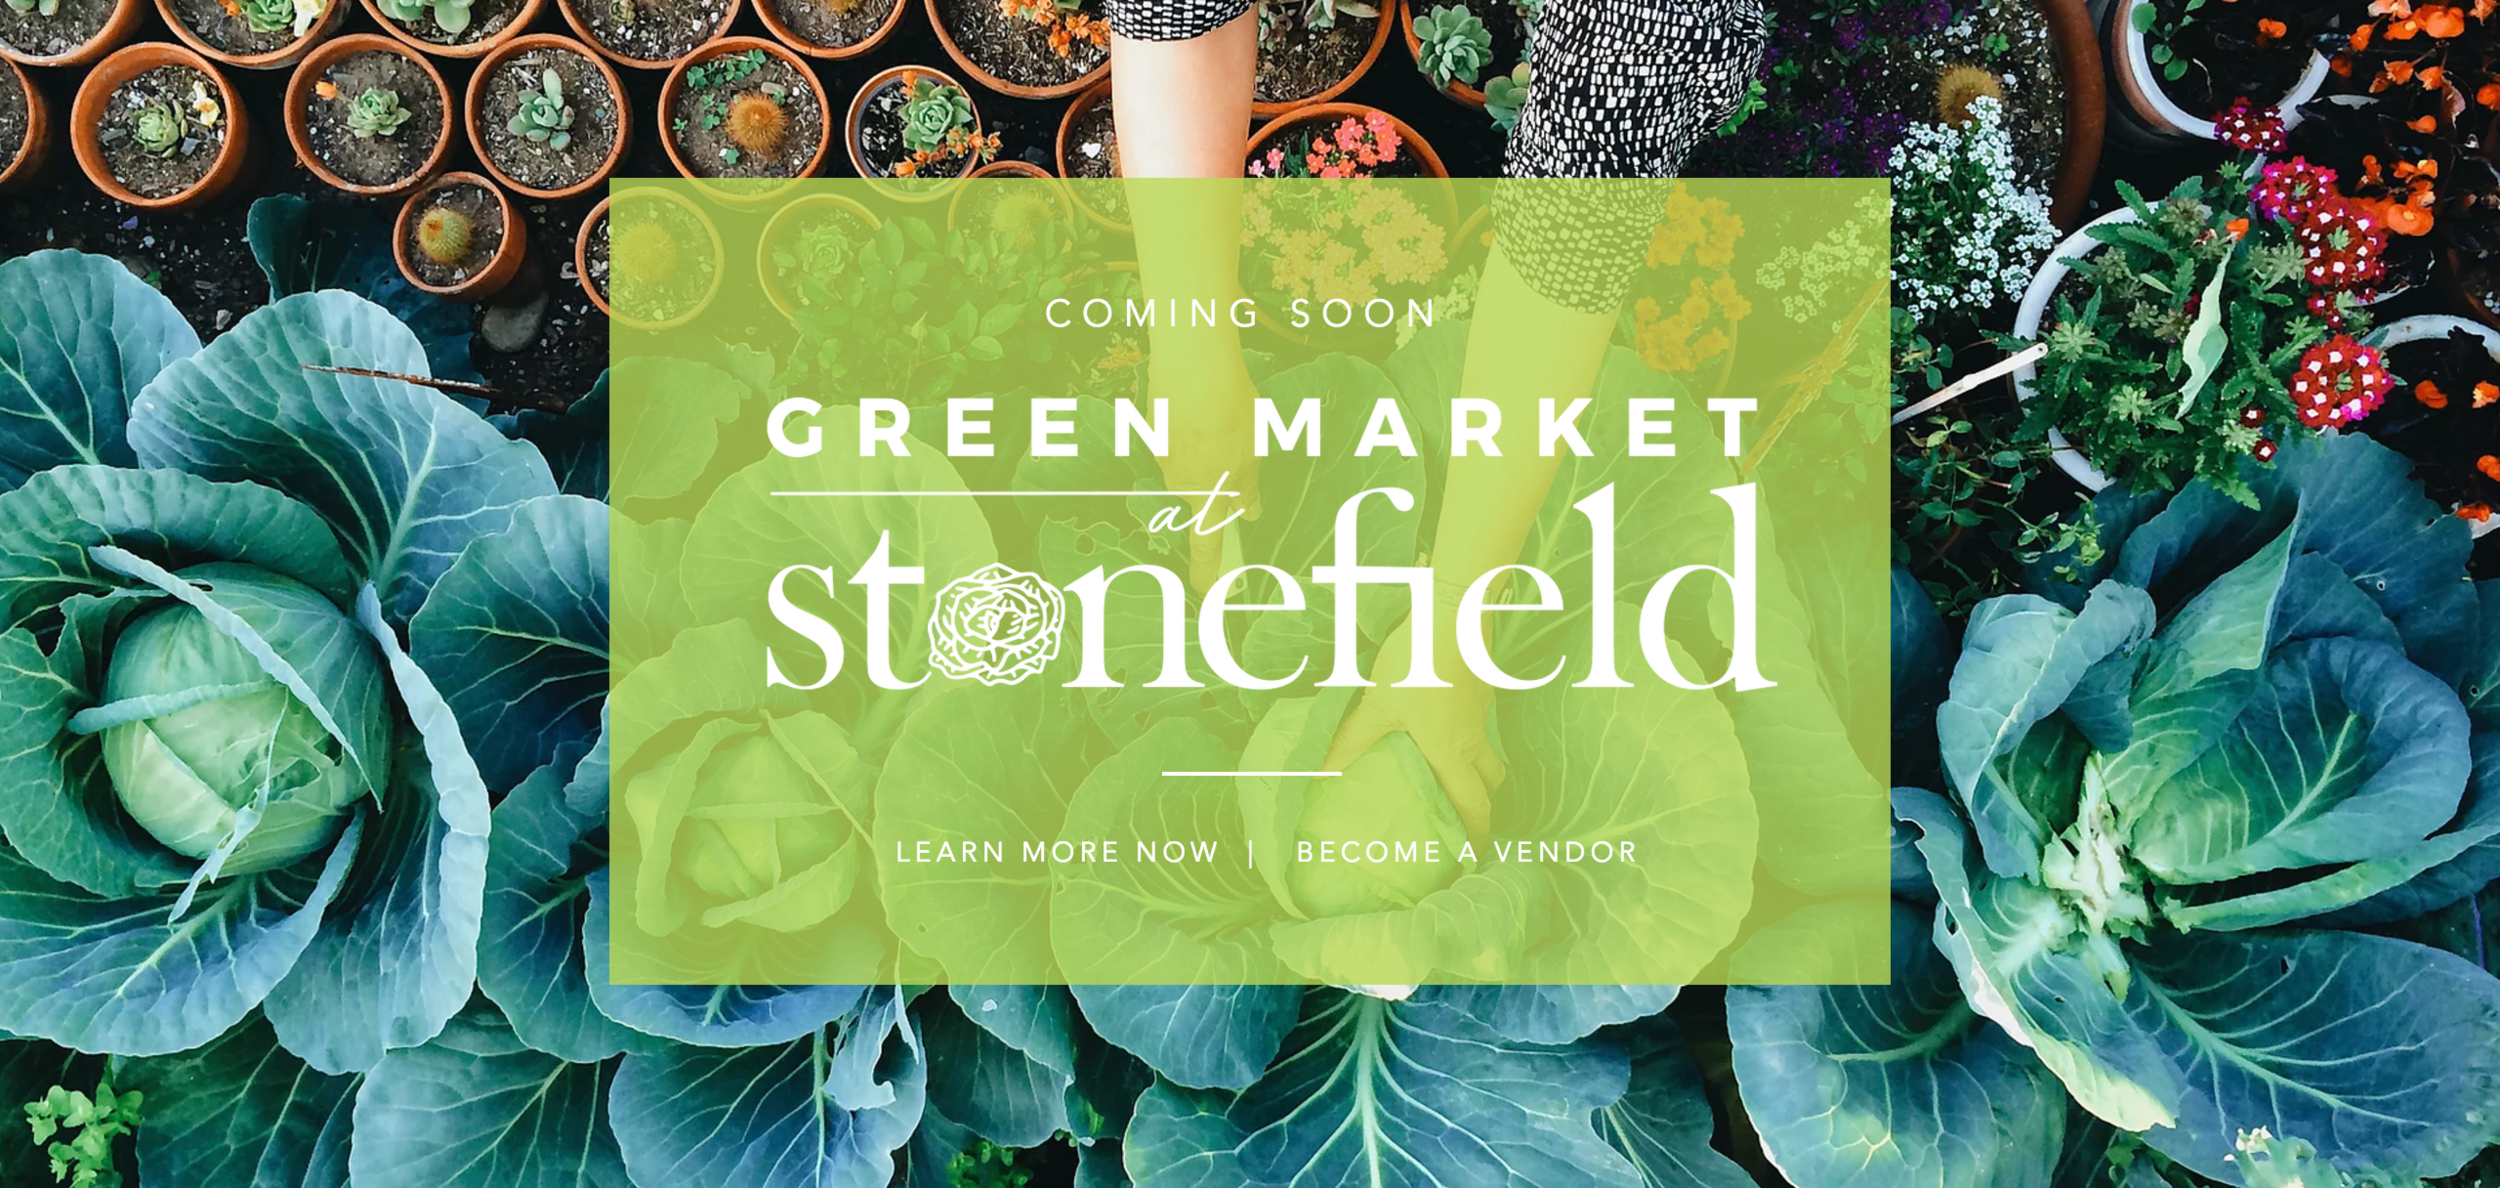 Green Market at Stonefield